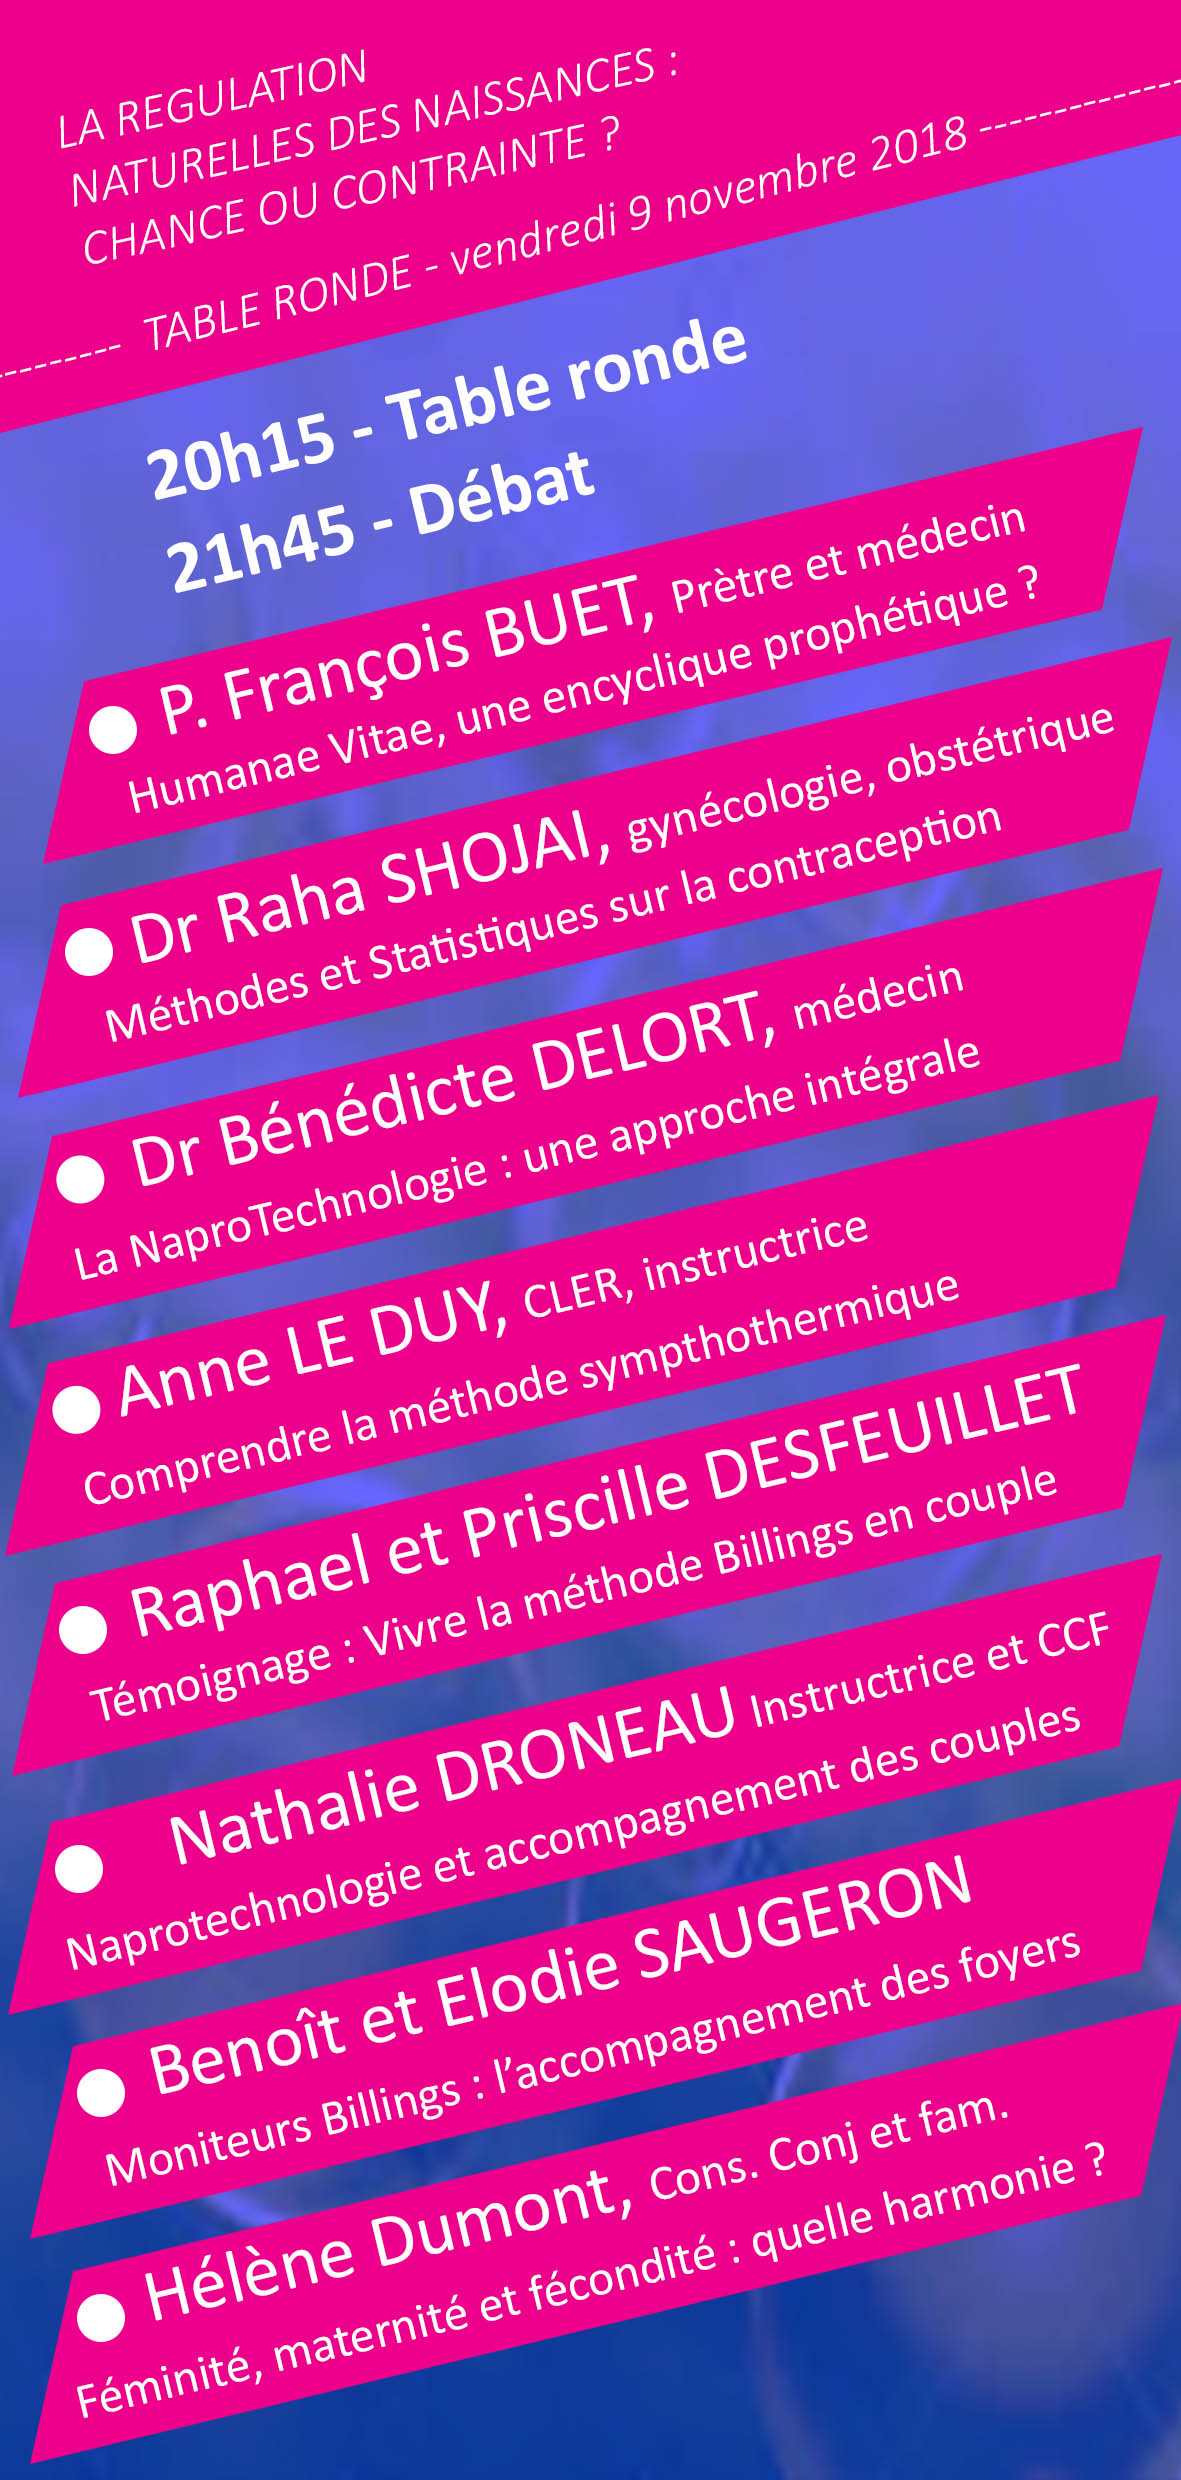 Table ronde regulation naturelle flyer verso